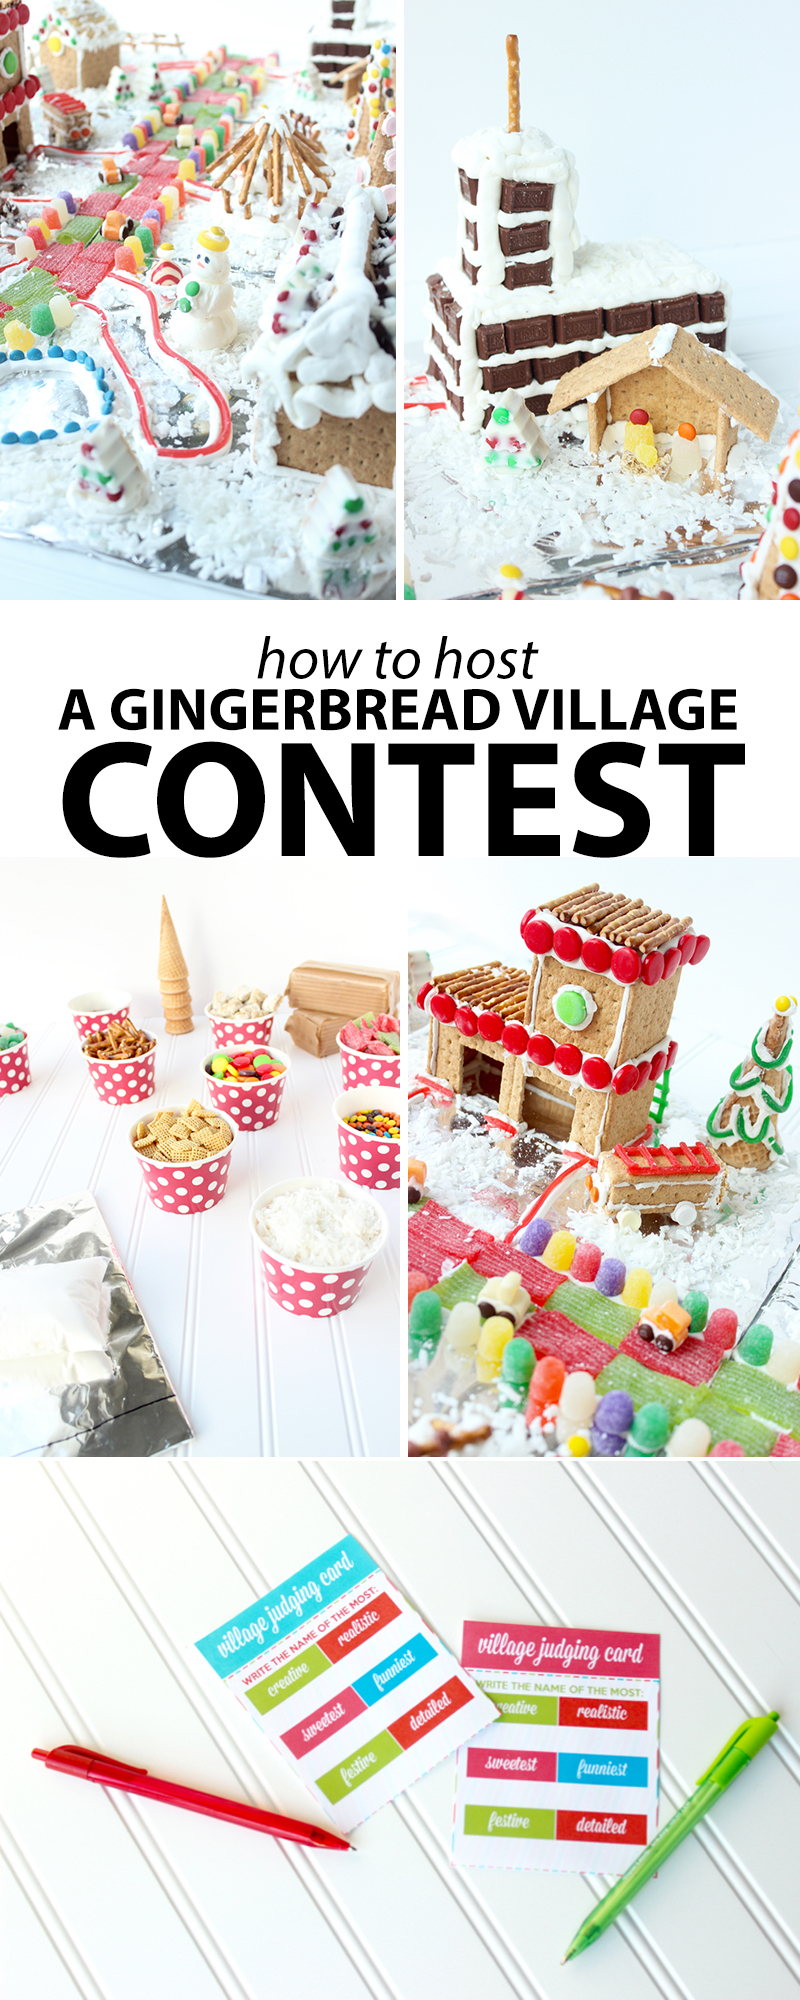 How to Host A Gingerbread Village Contest - FREE Printables - AndreasNotebook.com